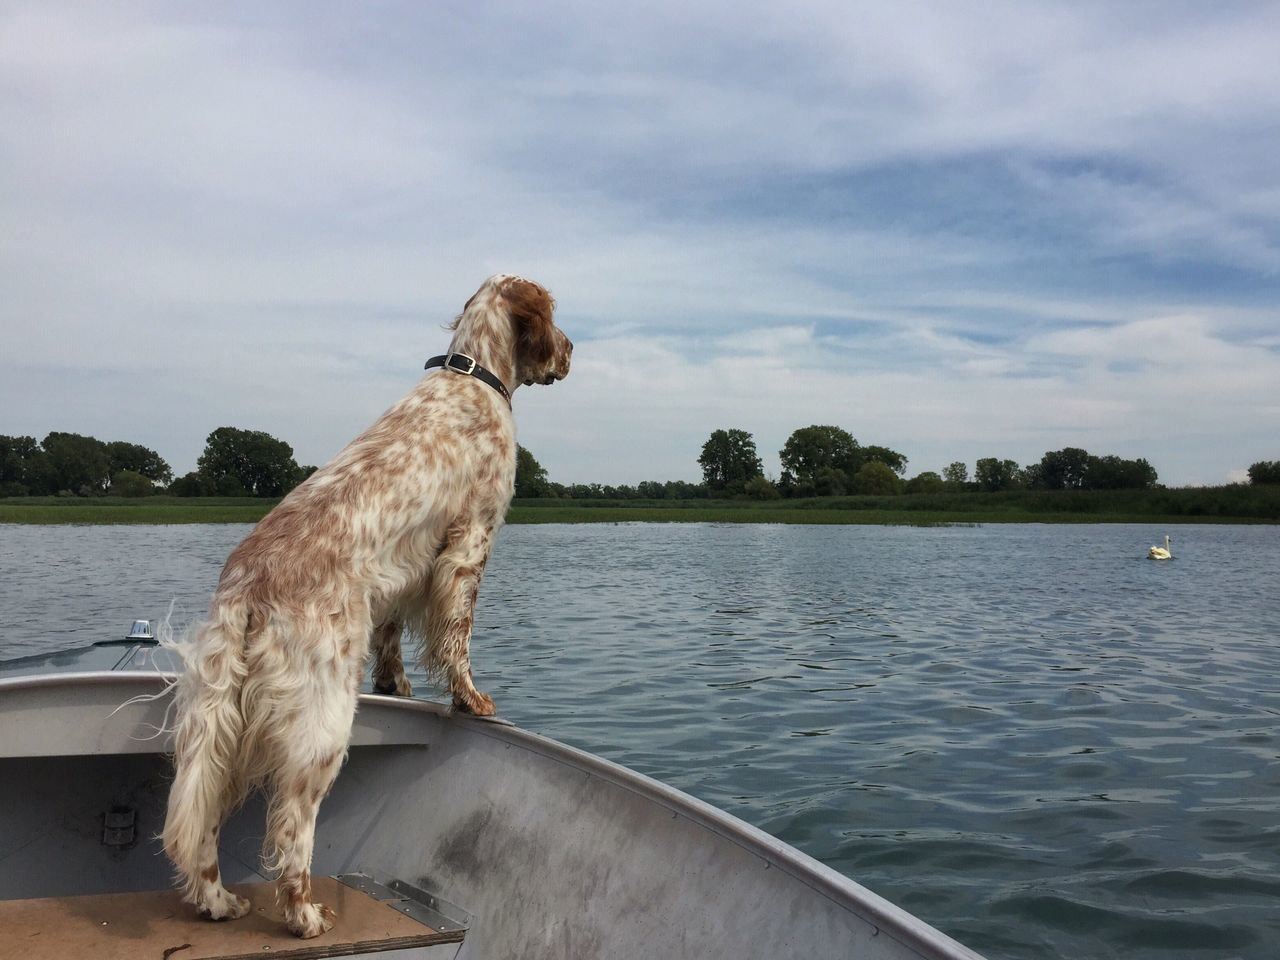 Pointing a swan Grosse Ile English Setter Bird Dog Dog In Boat Birddog Pointer Dog Swan